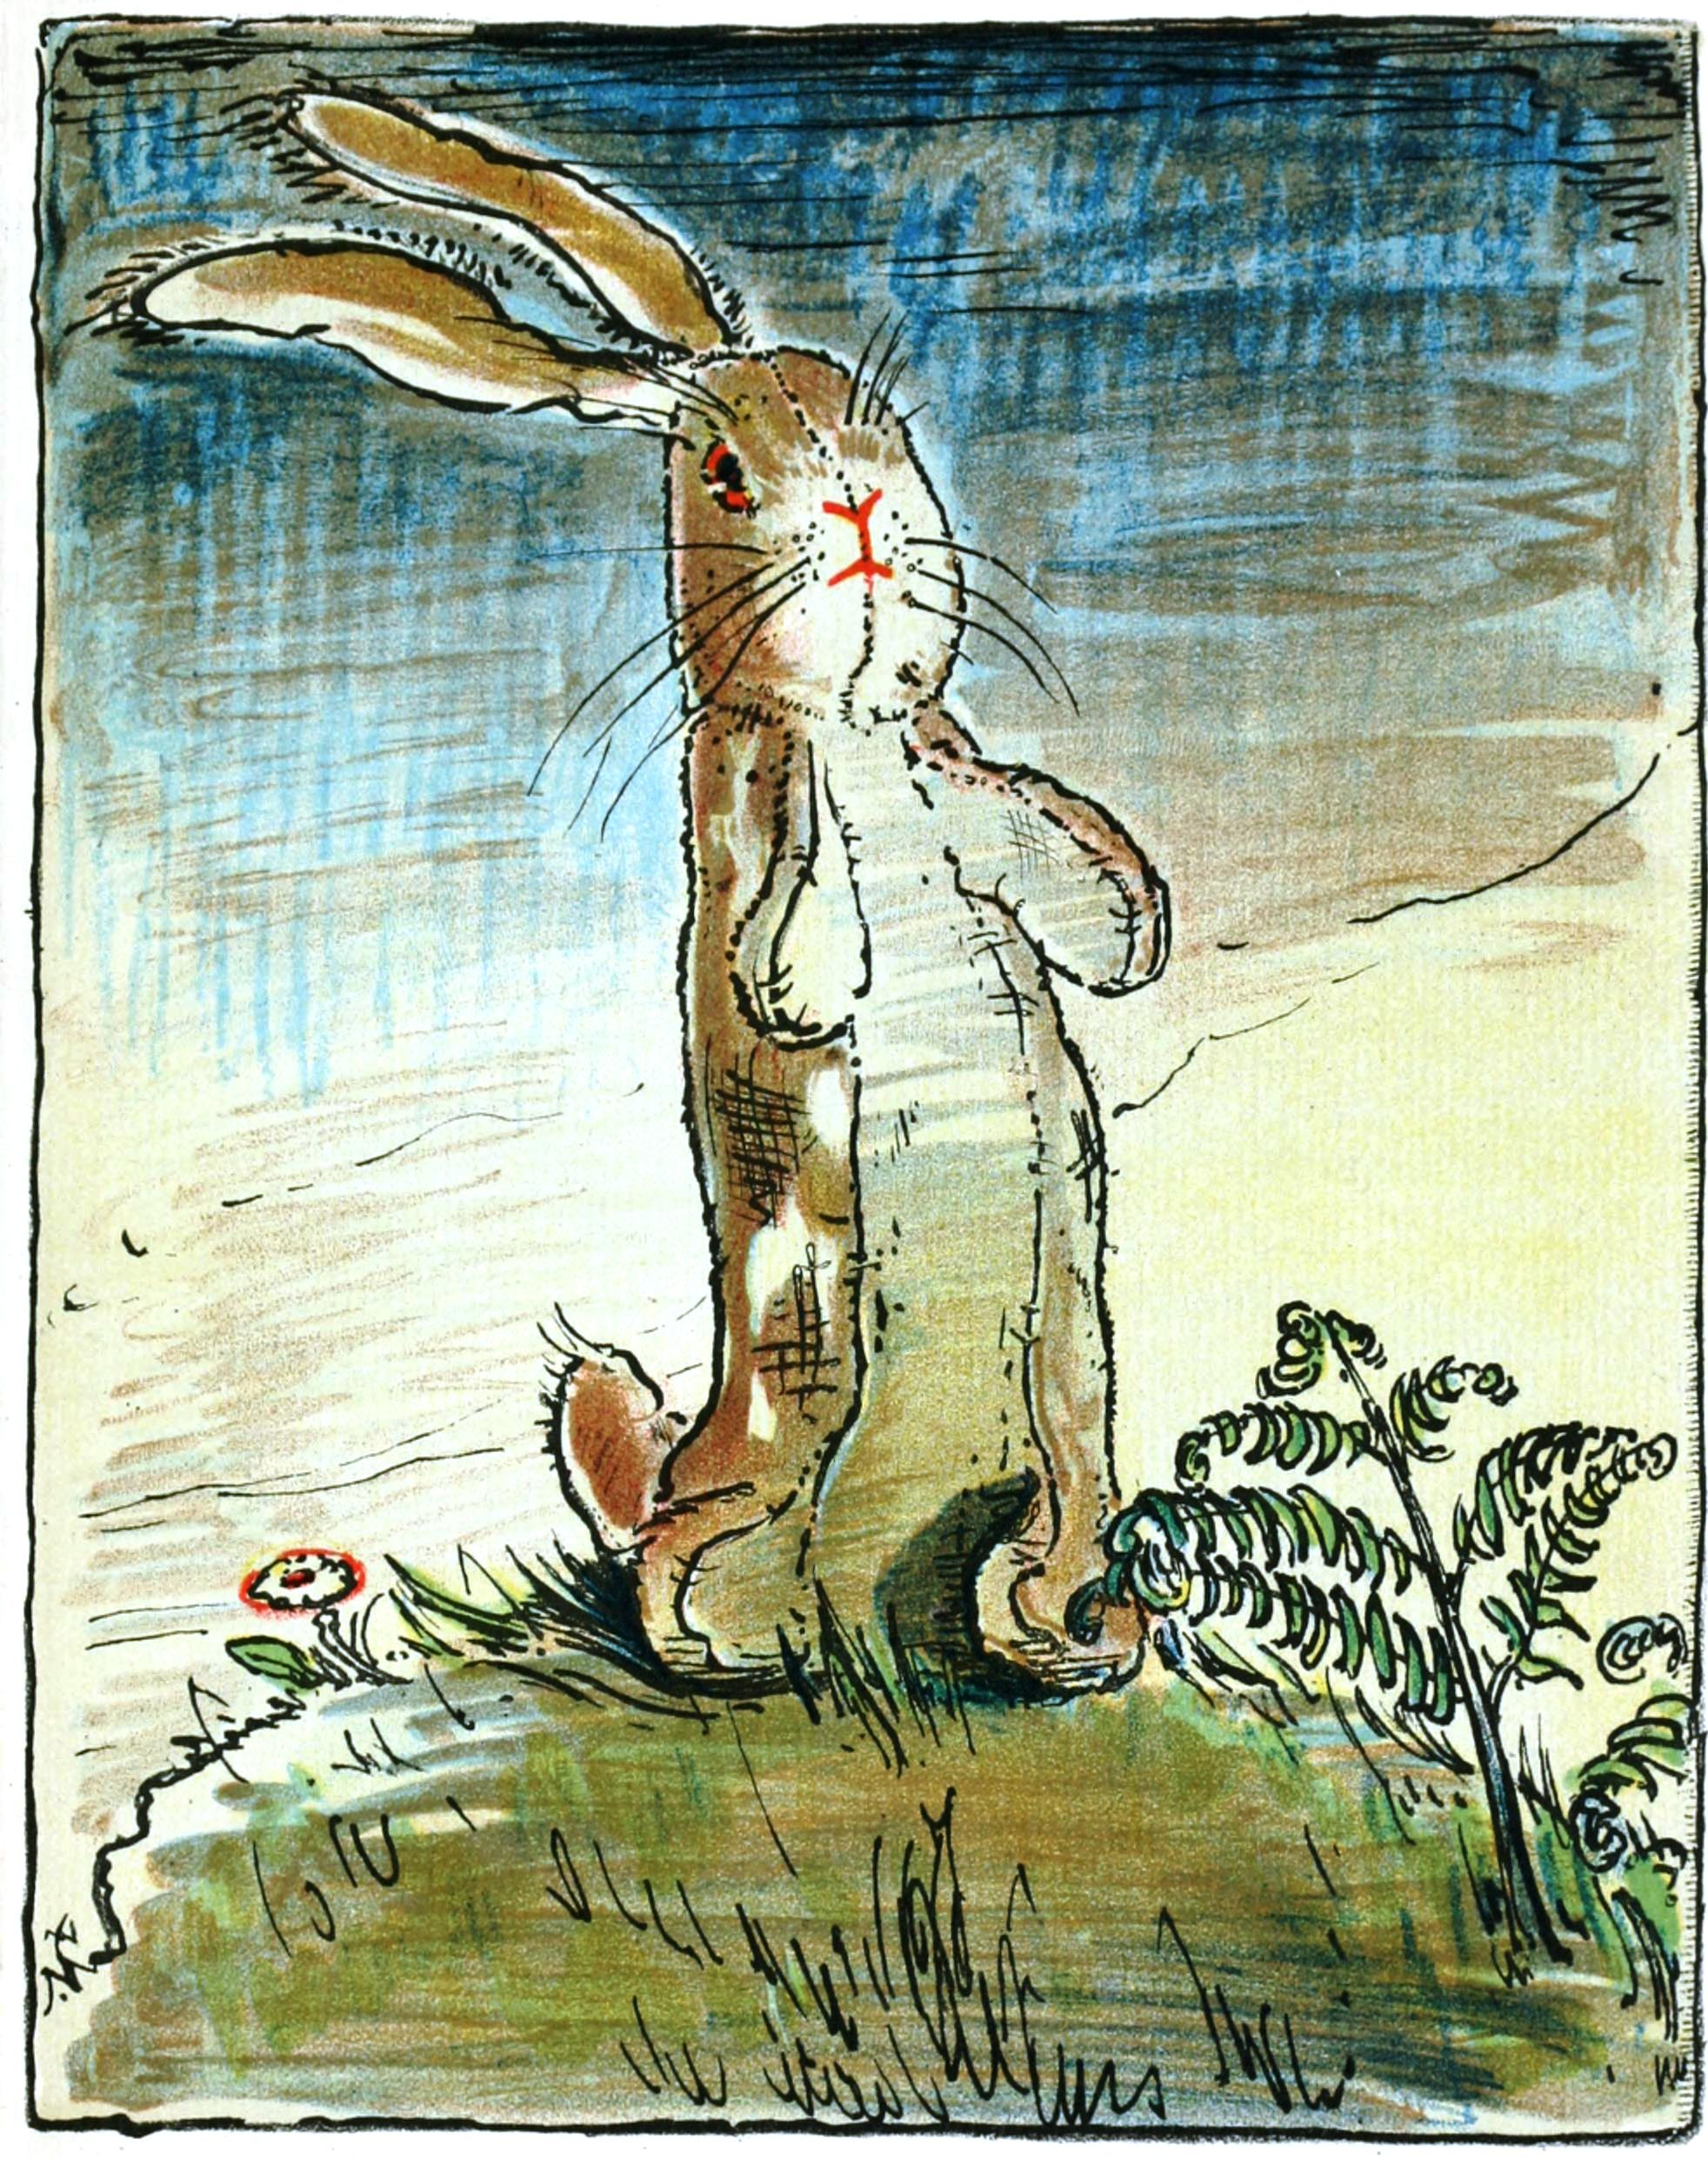 English: pg 25 of The Velveteen Rabbit.